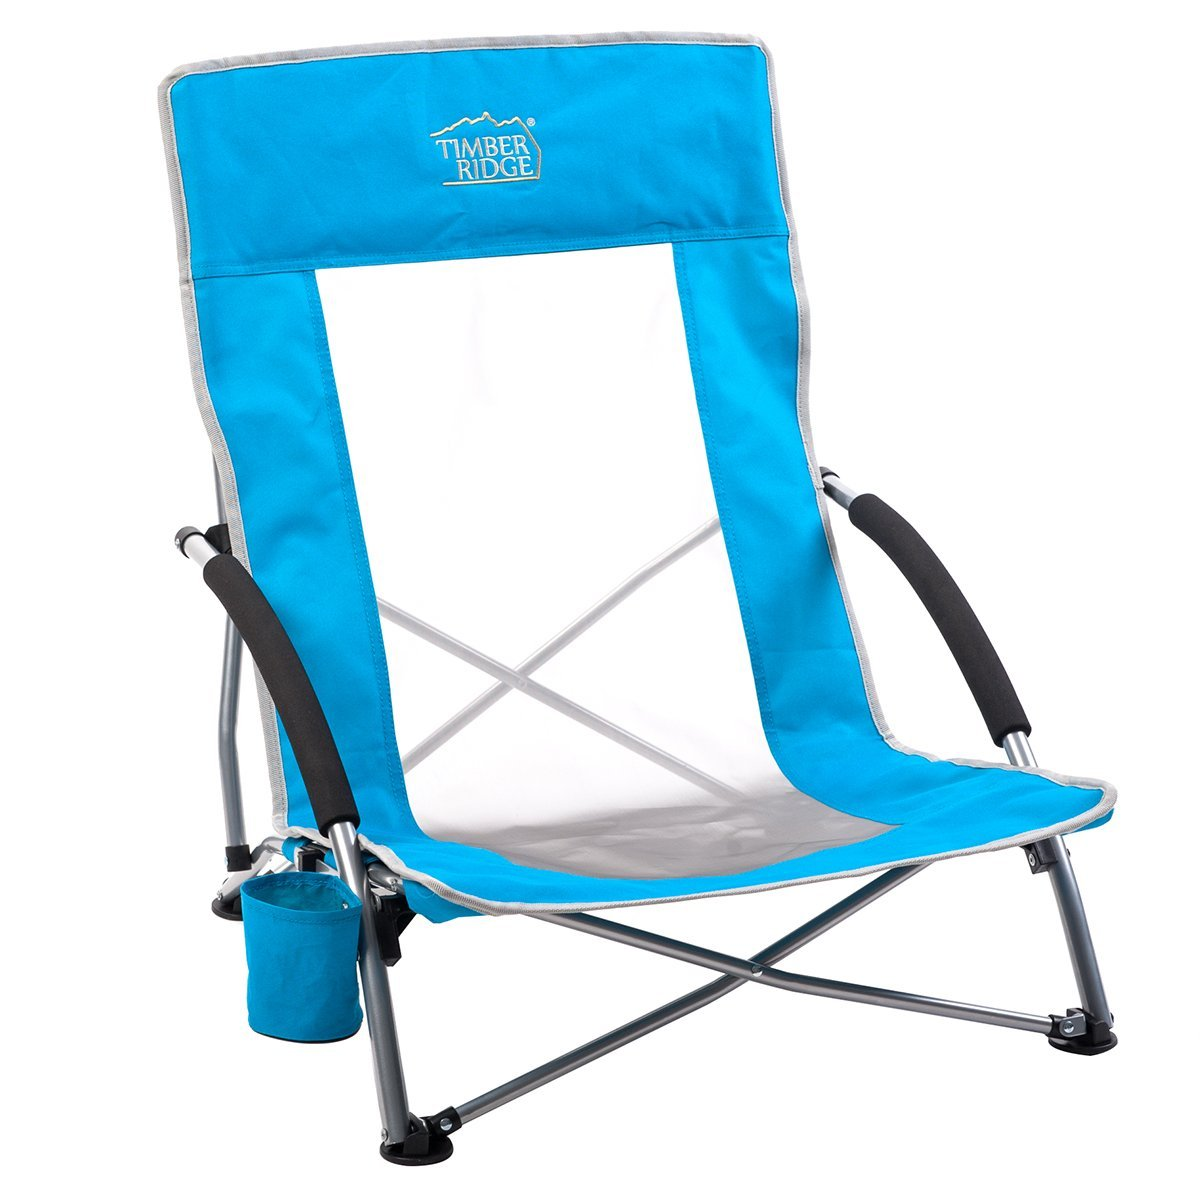 Astounding Cheap Sling Beach Chair Find Sling Beach Chair Deals On Gmtry Best Dining Table And Chair Ideas Images Gmtryco